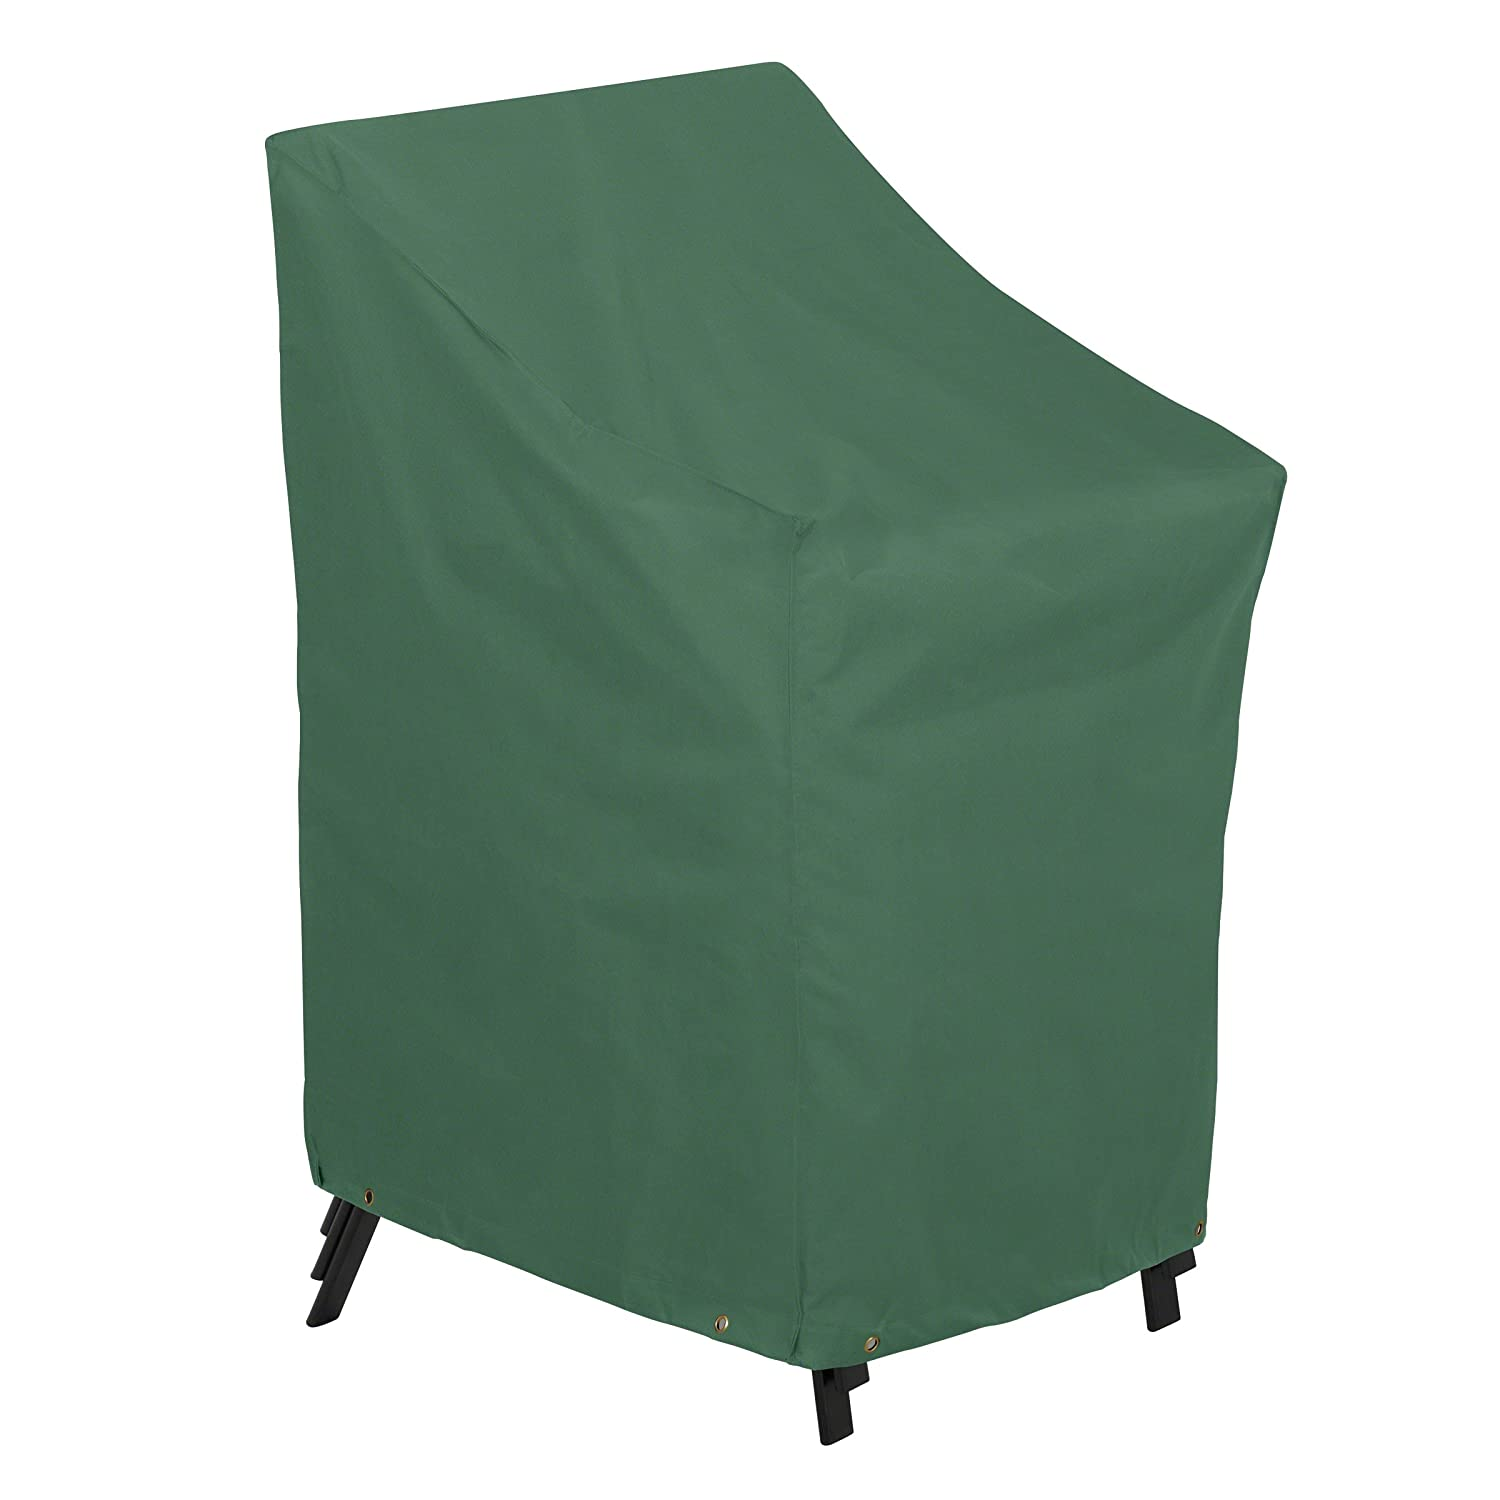 amazoncom classic accessories atrium stackable patio chairs cover resistant patio set cover with uv protection green - Stackable Patio Chairs